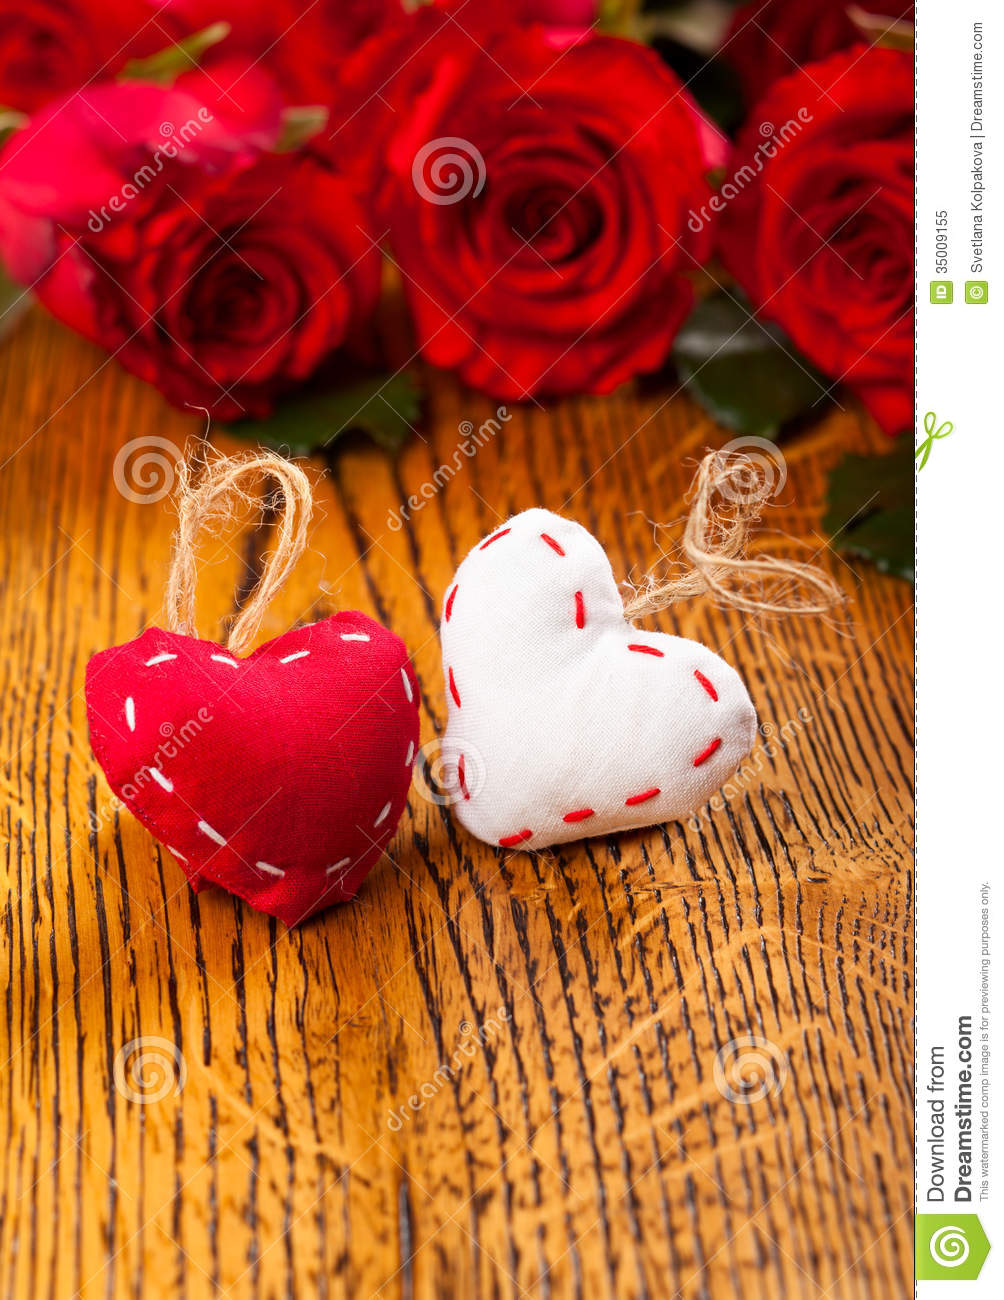 Two Hearts And Flowers Royalty Free Stock Photo - Image: 35009155